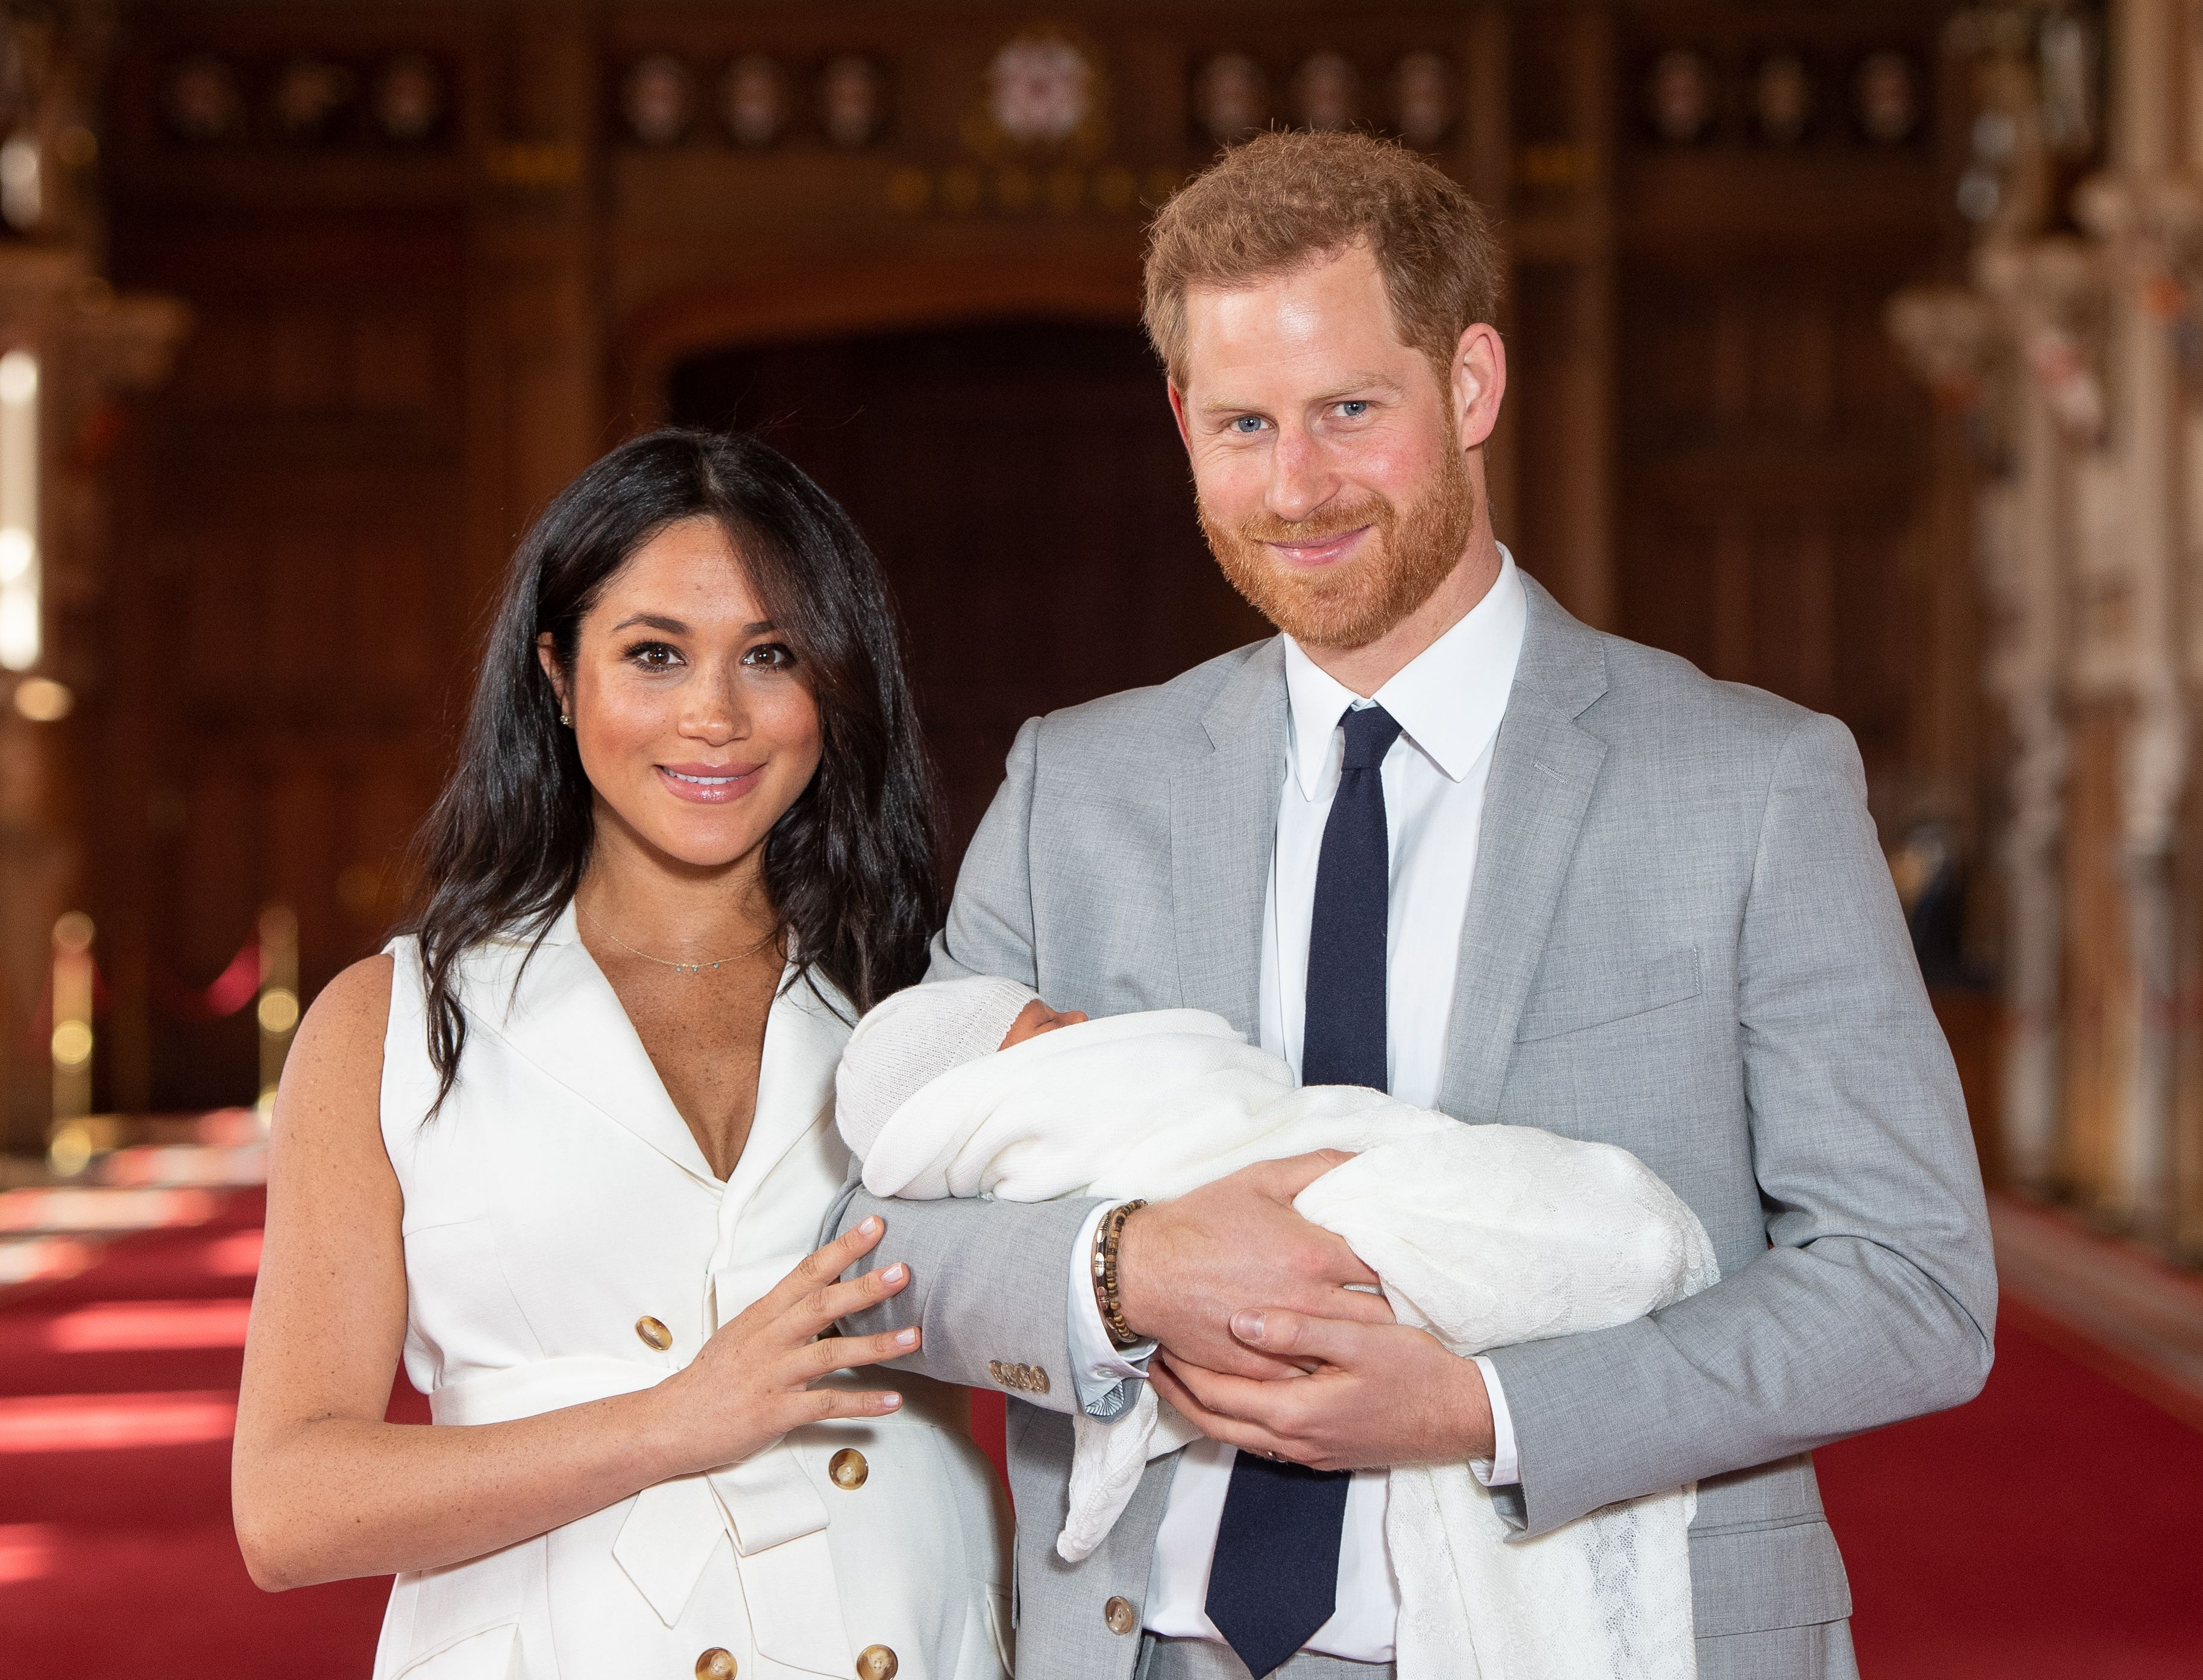 Buckingham Palace Released a Rare Statement on Meghan Markle's Involvement in CBS's Meghan and Harry, Plus One